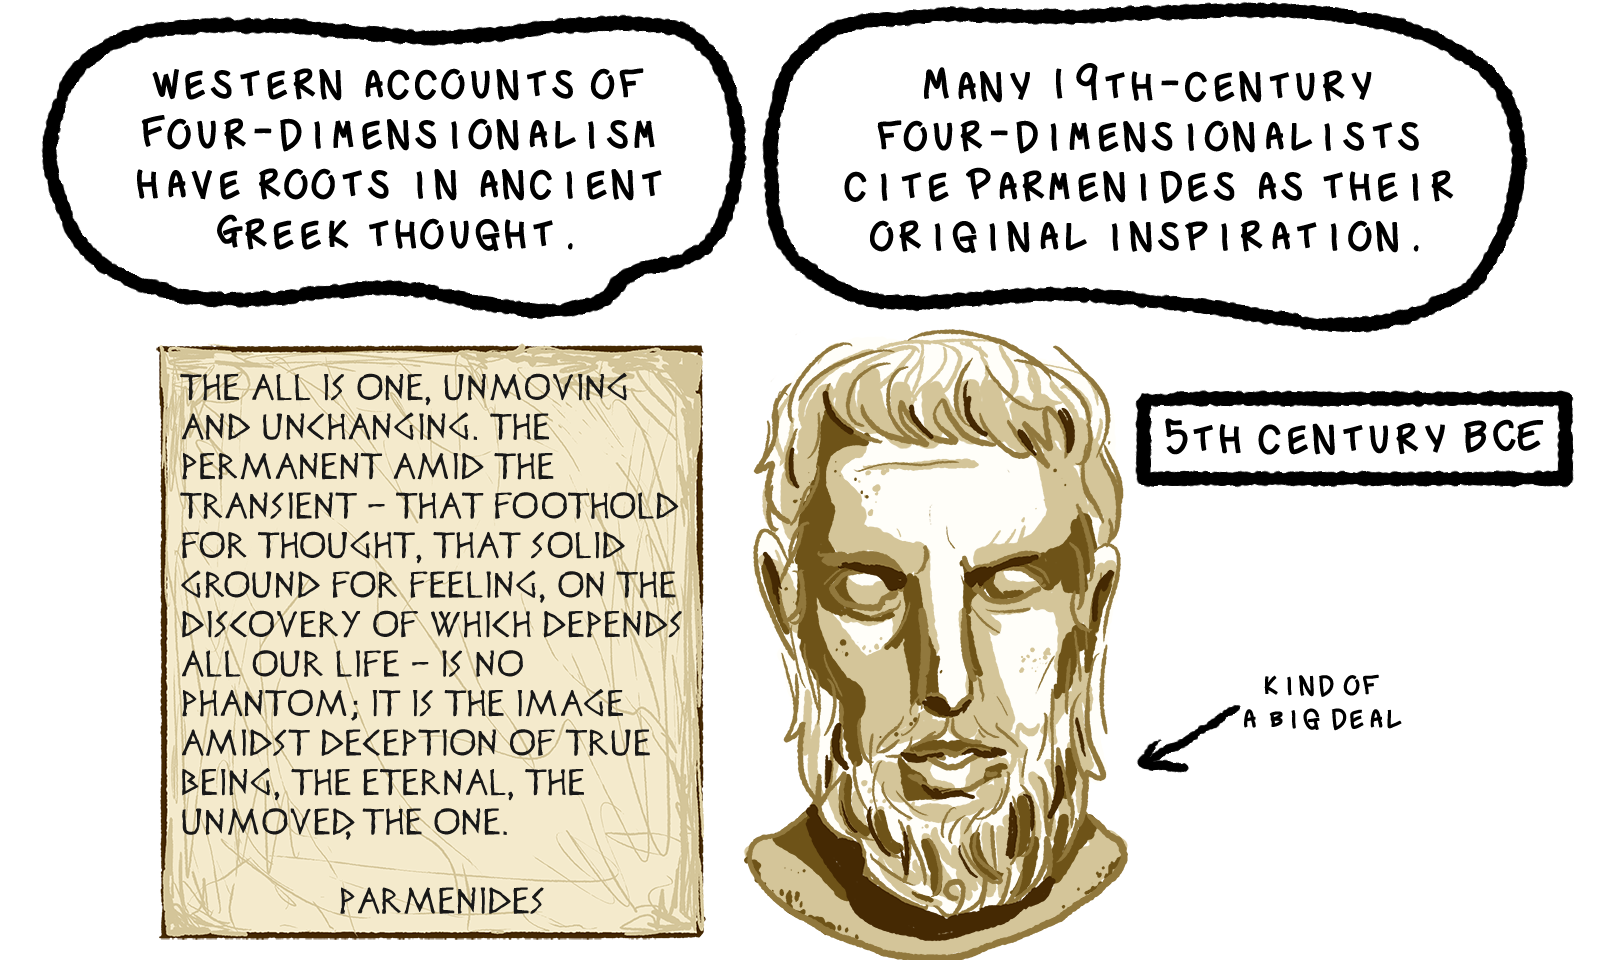 A text box reads, Western accounts of four-dimensionalism have roots in ancient greek thought. Many 19th-century four-dimensionalists cite Parmenides as their original inspiration. Pictured is a drawing of a bust of Parmenides, with the caption 5th century BCE. An arrow points at him, reading in small text, kind of a big deal. To his left we see a stone tablet that is inscribed with Greek-looking lettering. This reads, The all is one, unmoving and unchanging. The permanent amid the transient - that foothold for thought, that solid ground for feeling, on the discovery of which depends all our life - is no phantom; it is the image amidst deception of true being, the eternal, the unmoved, the one. The quote is attributed to Parmenides.